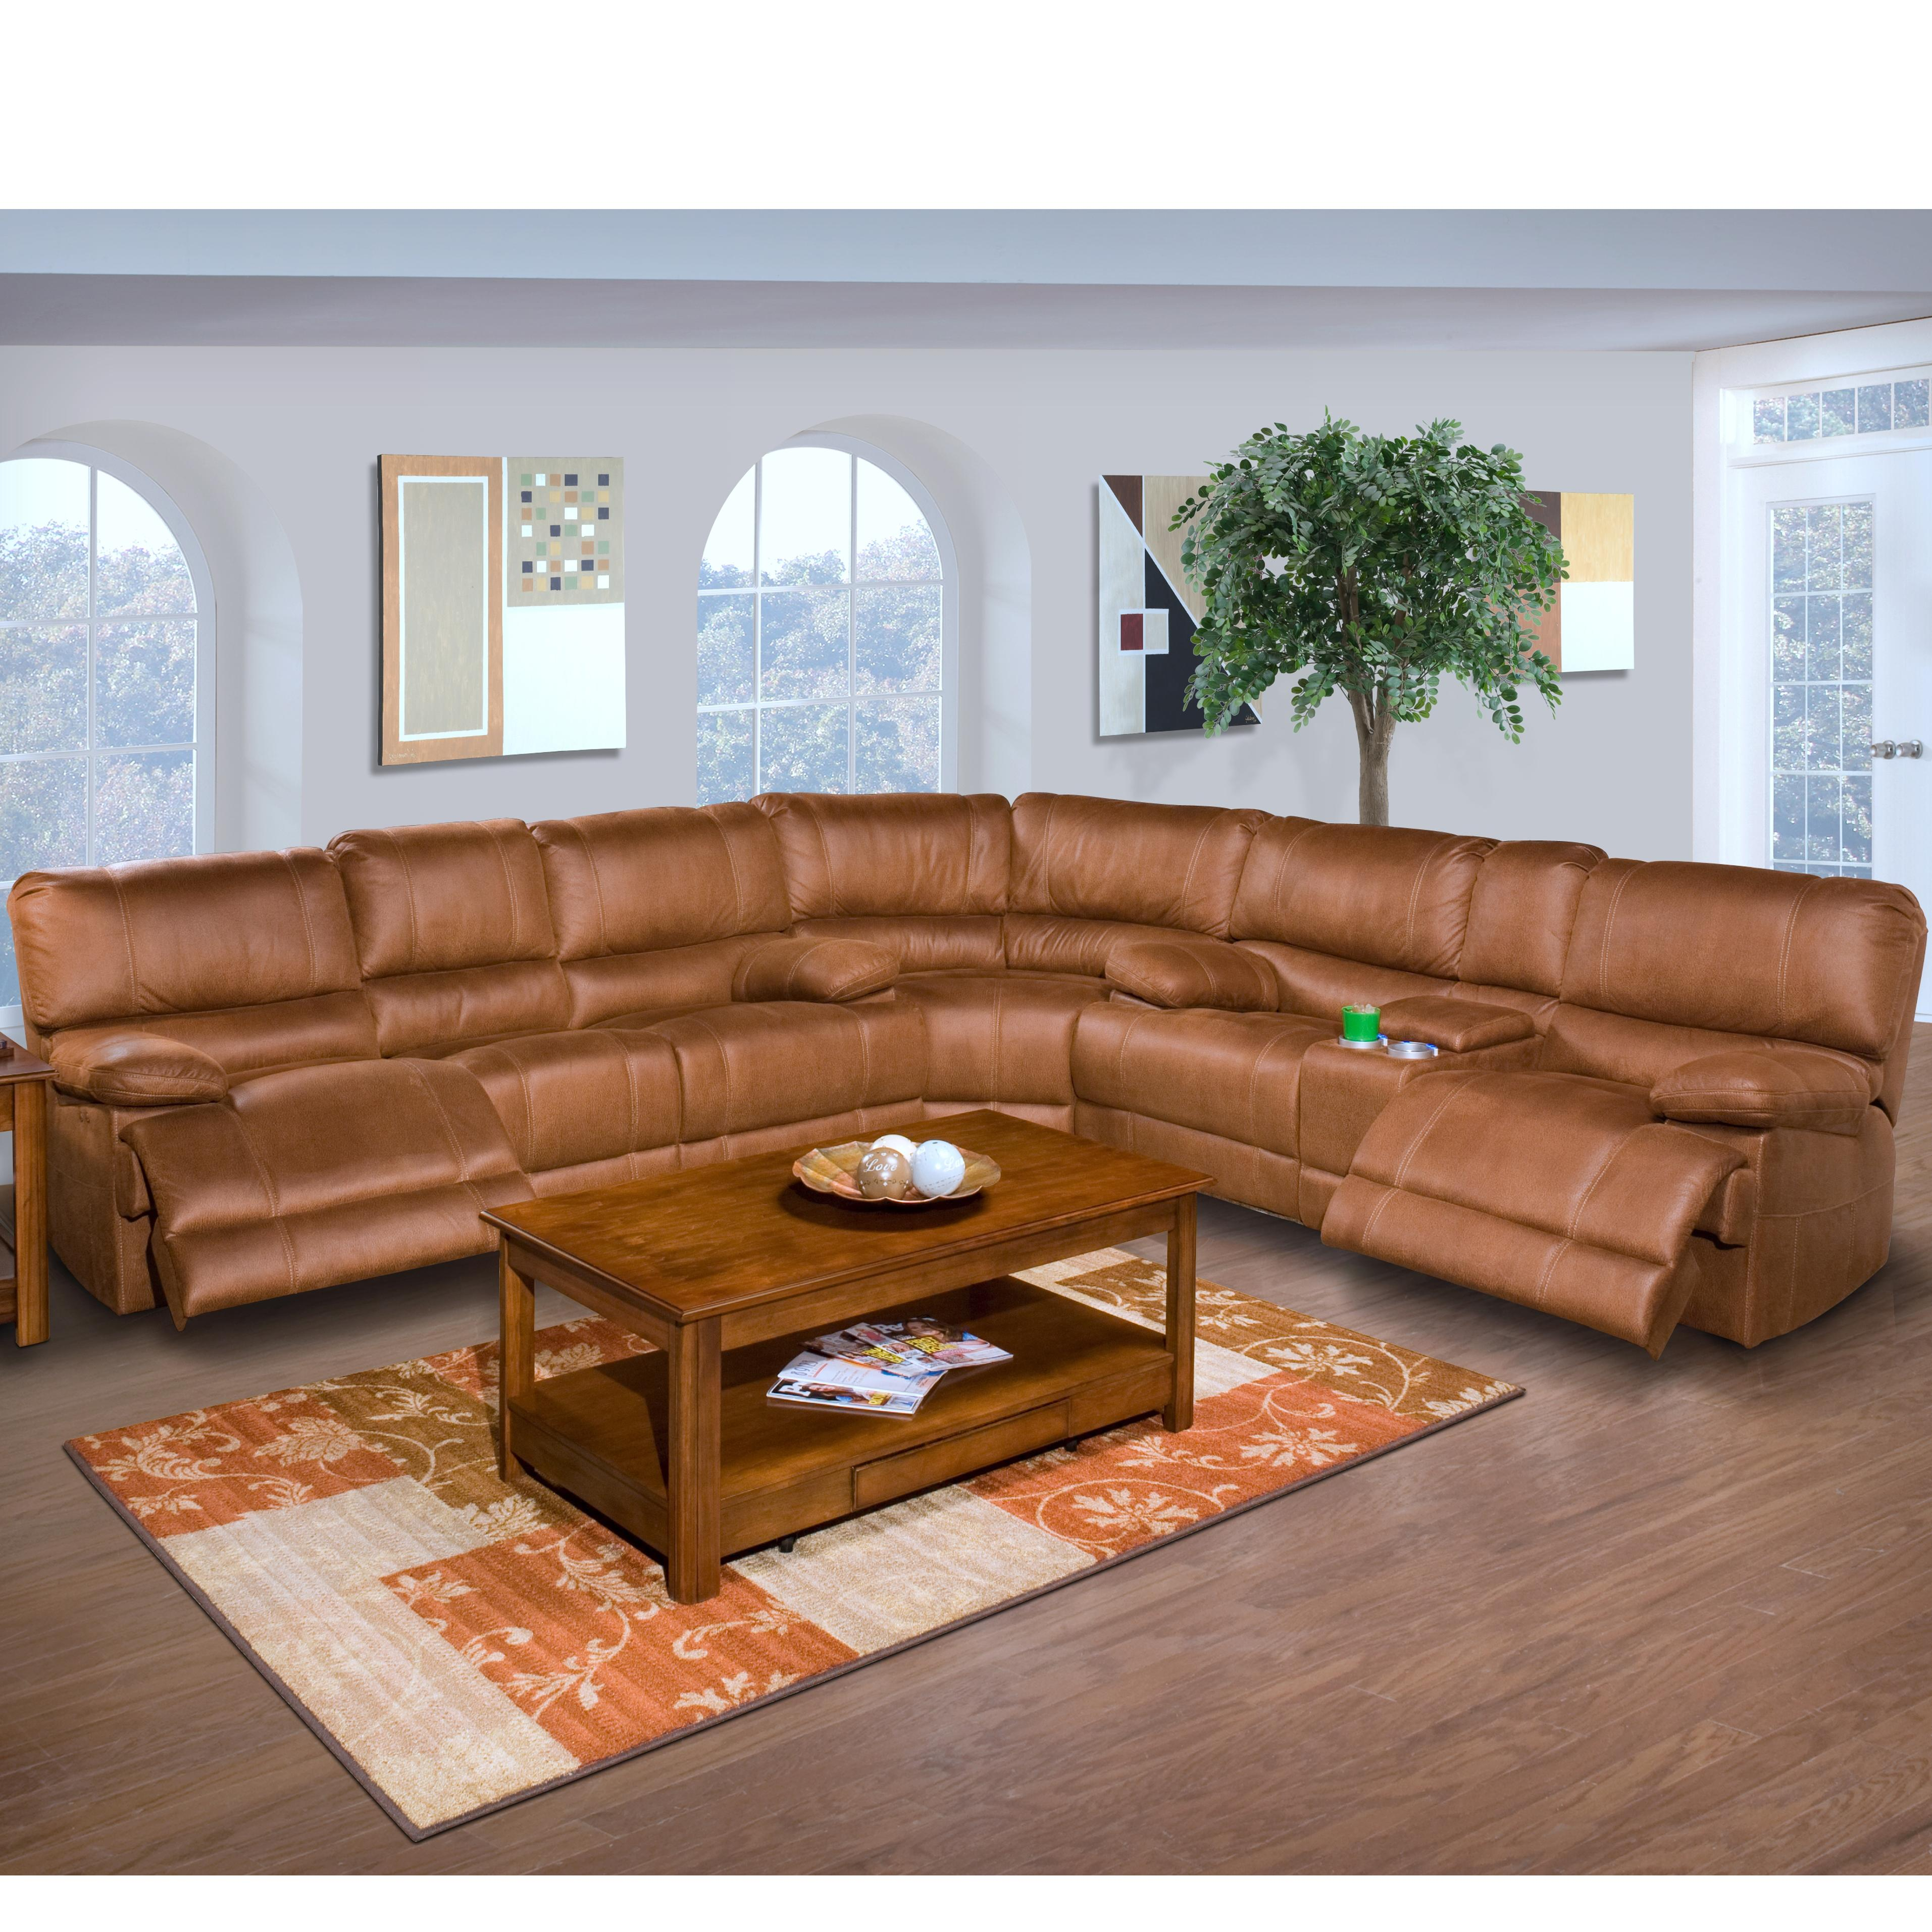 New Classic Montana Casual Recliner Sectional - Item Number: 20-309-40-CYB+25-CYB+22-309-32-CYB